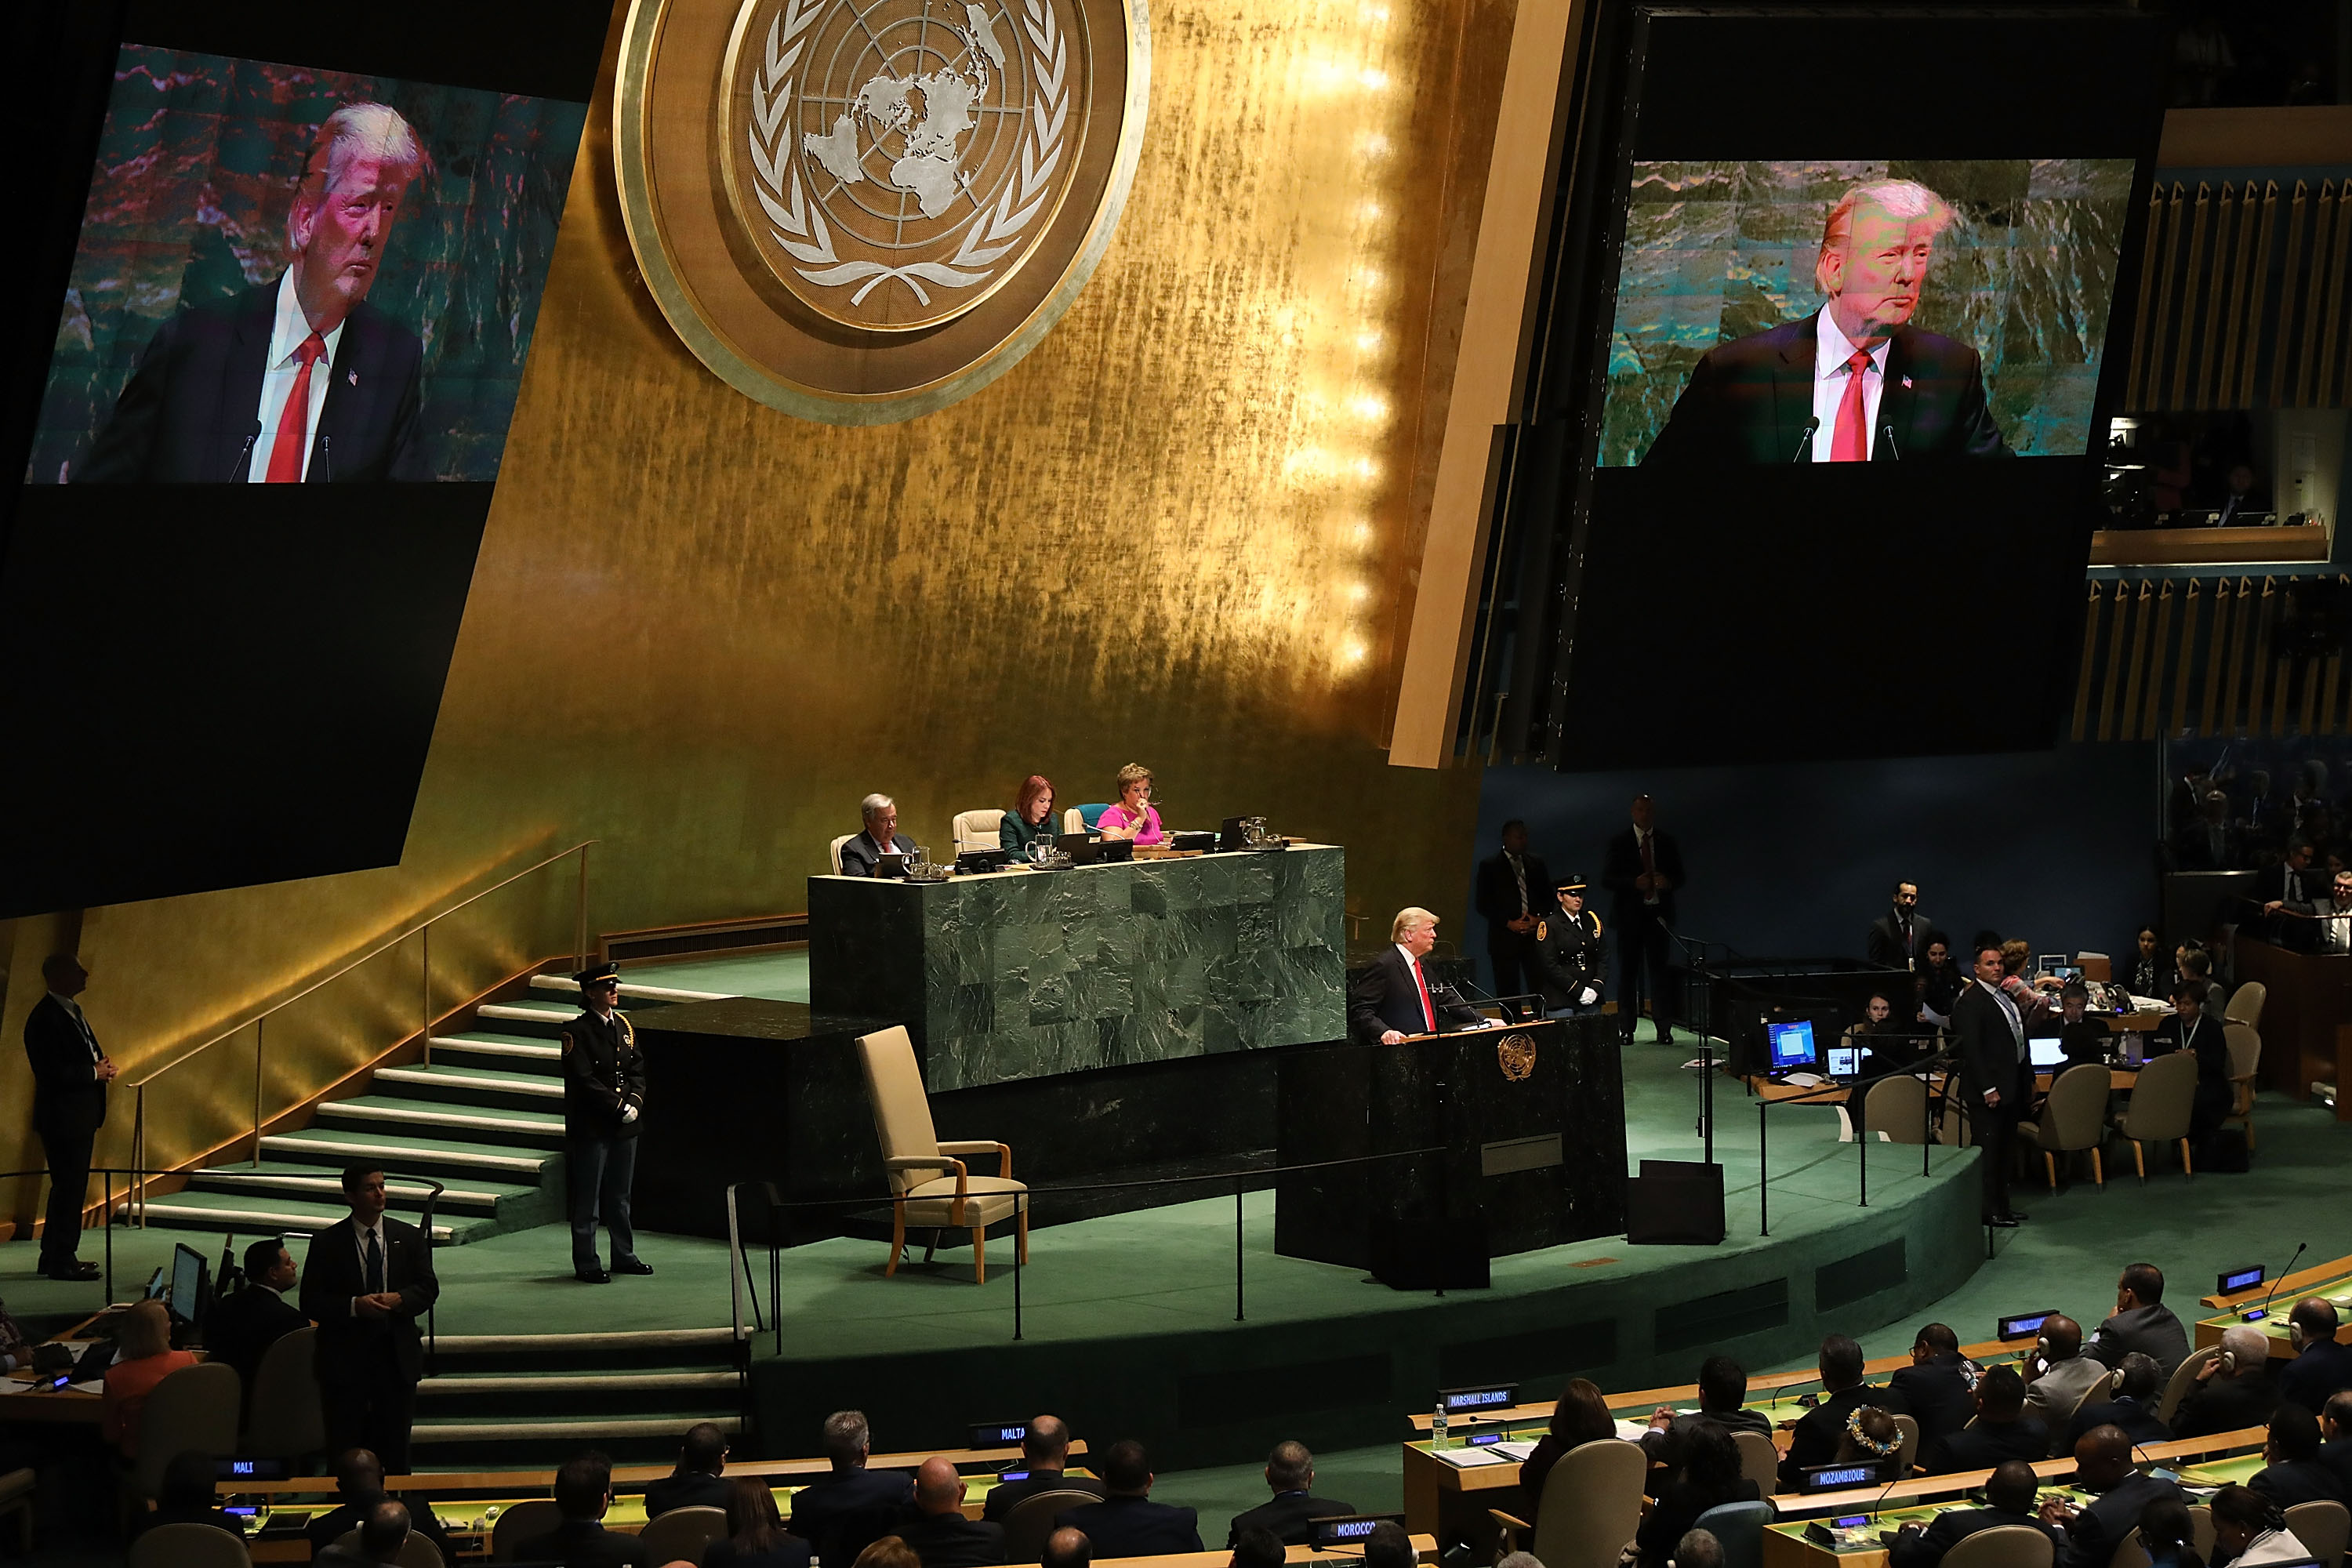 President Donald Trump addresses the United Nations General Assembly from behind a podium. Huge screens to either side project his image to the seated members.